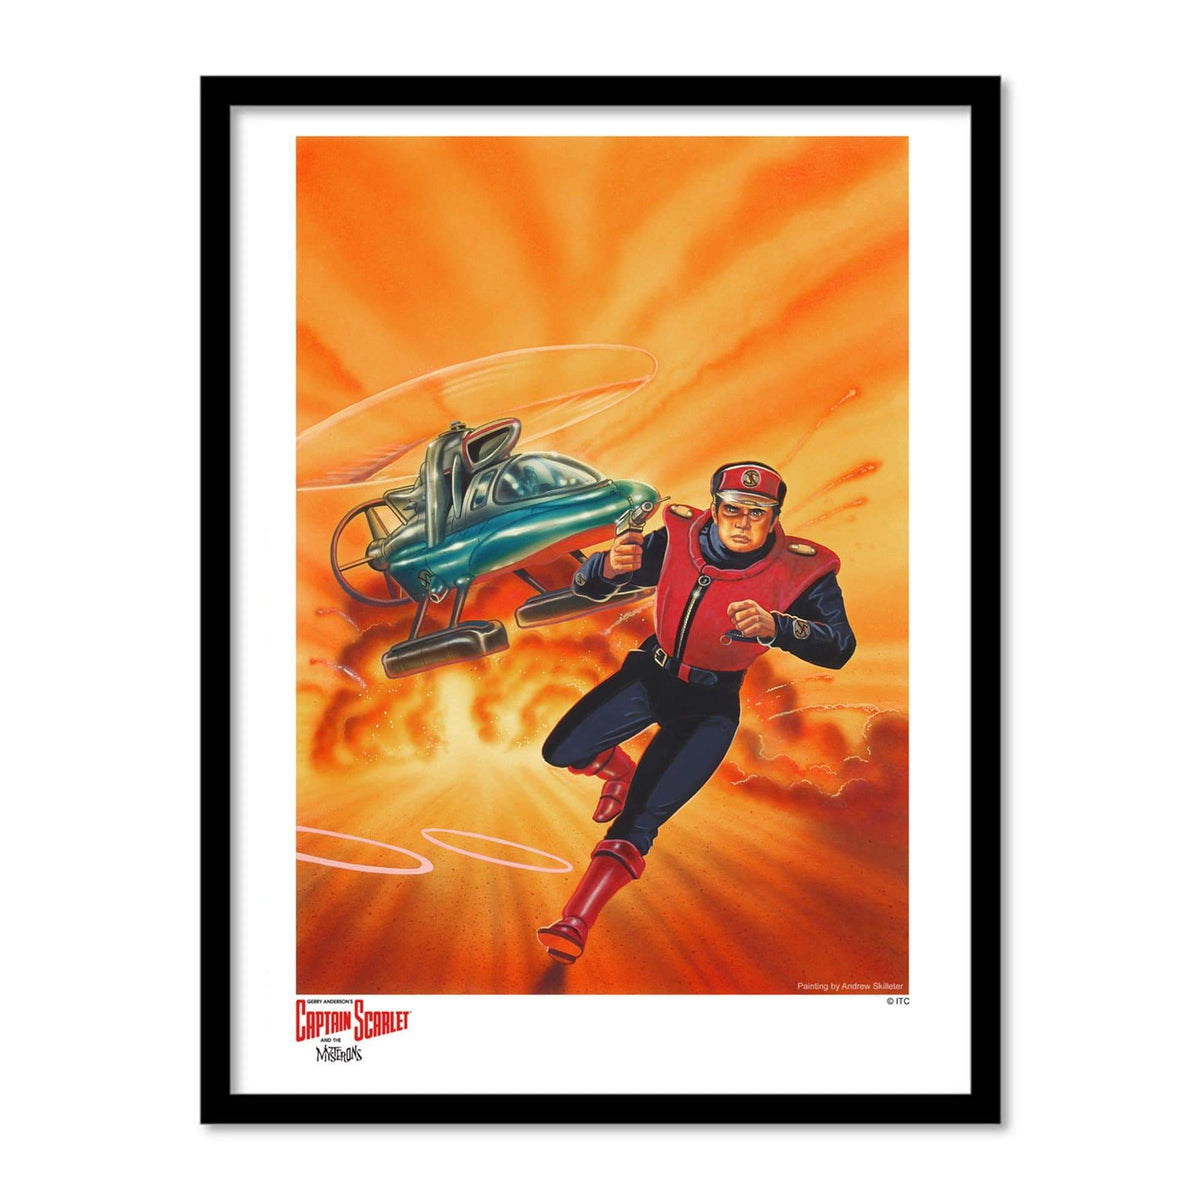 Captain Scarlet 'Fire' Artist Signed Print (Official & Exclusive] - The Gerry Anderson Store